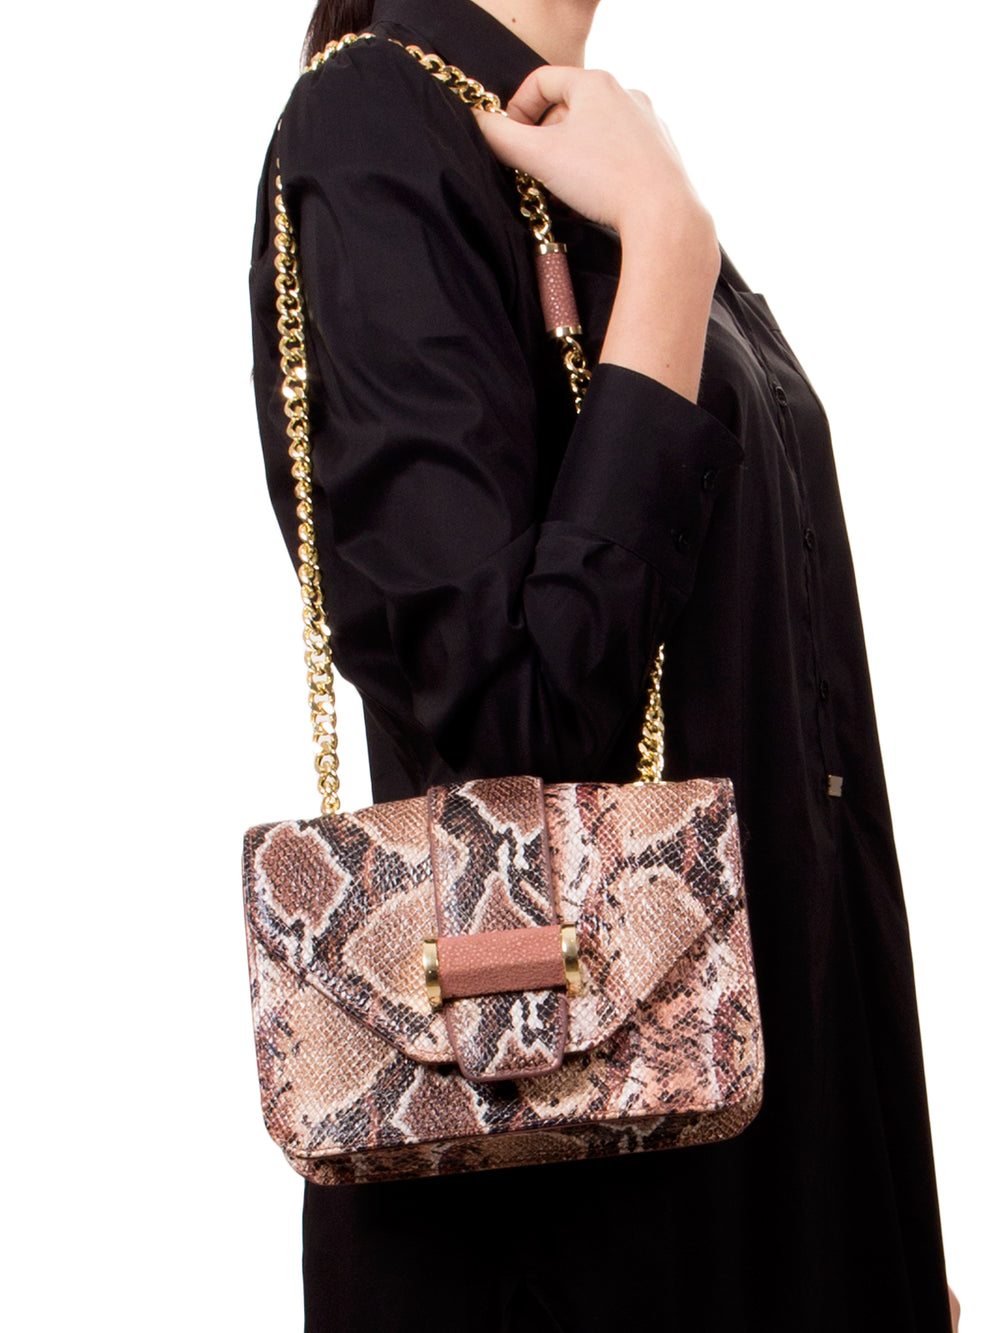 Faux Phython Shoulder Bag, IVANKA - elilhaam.com